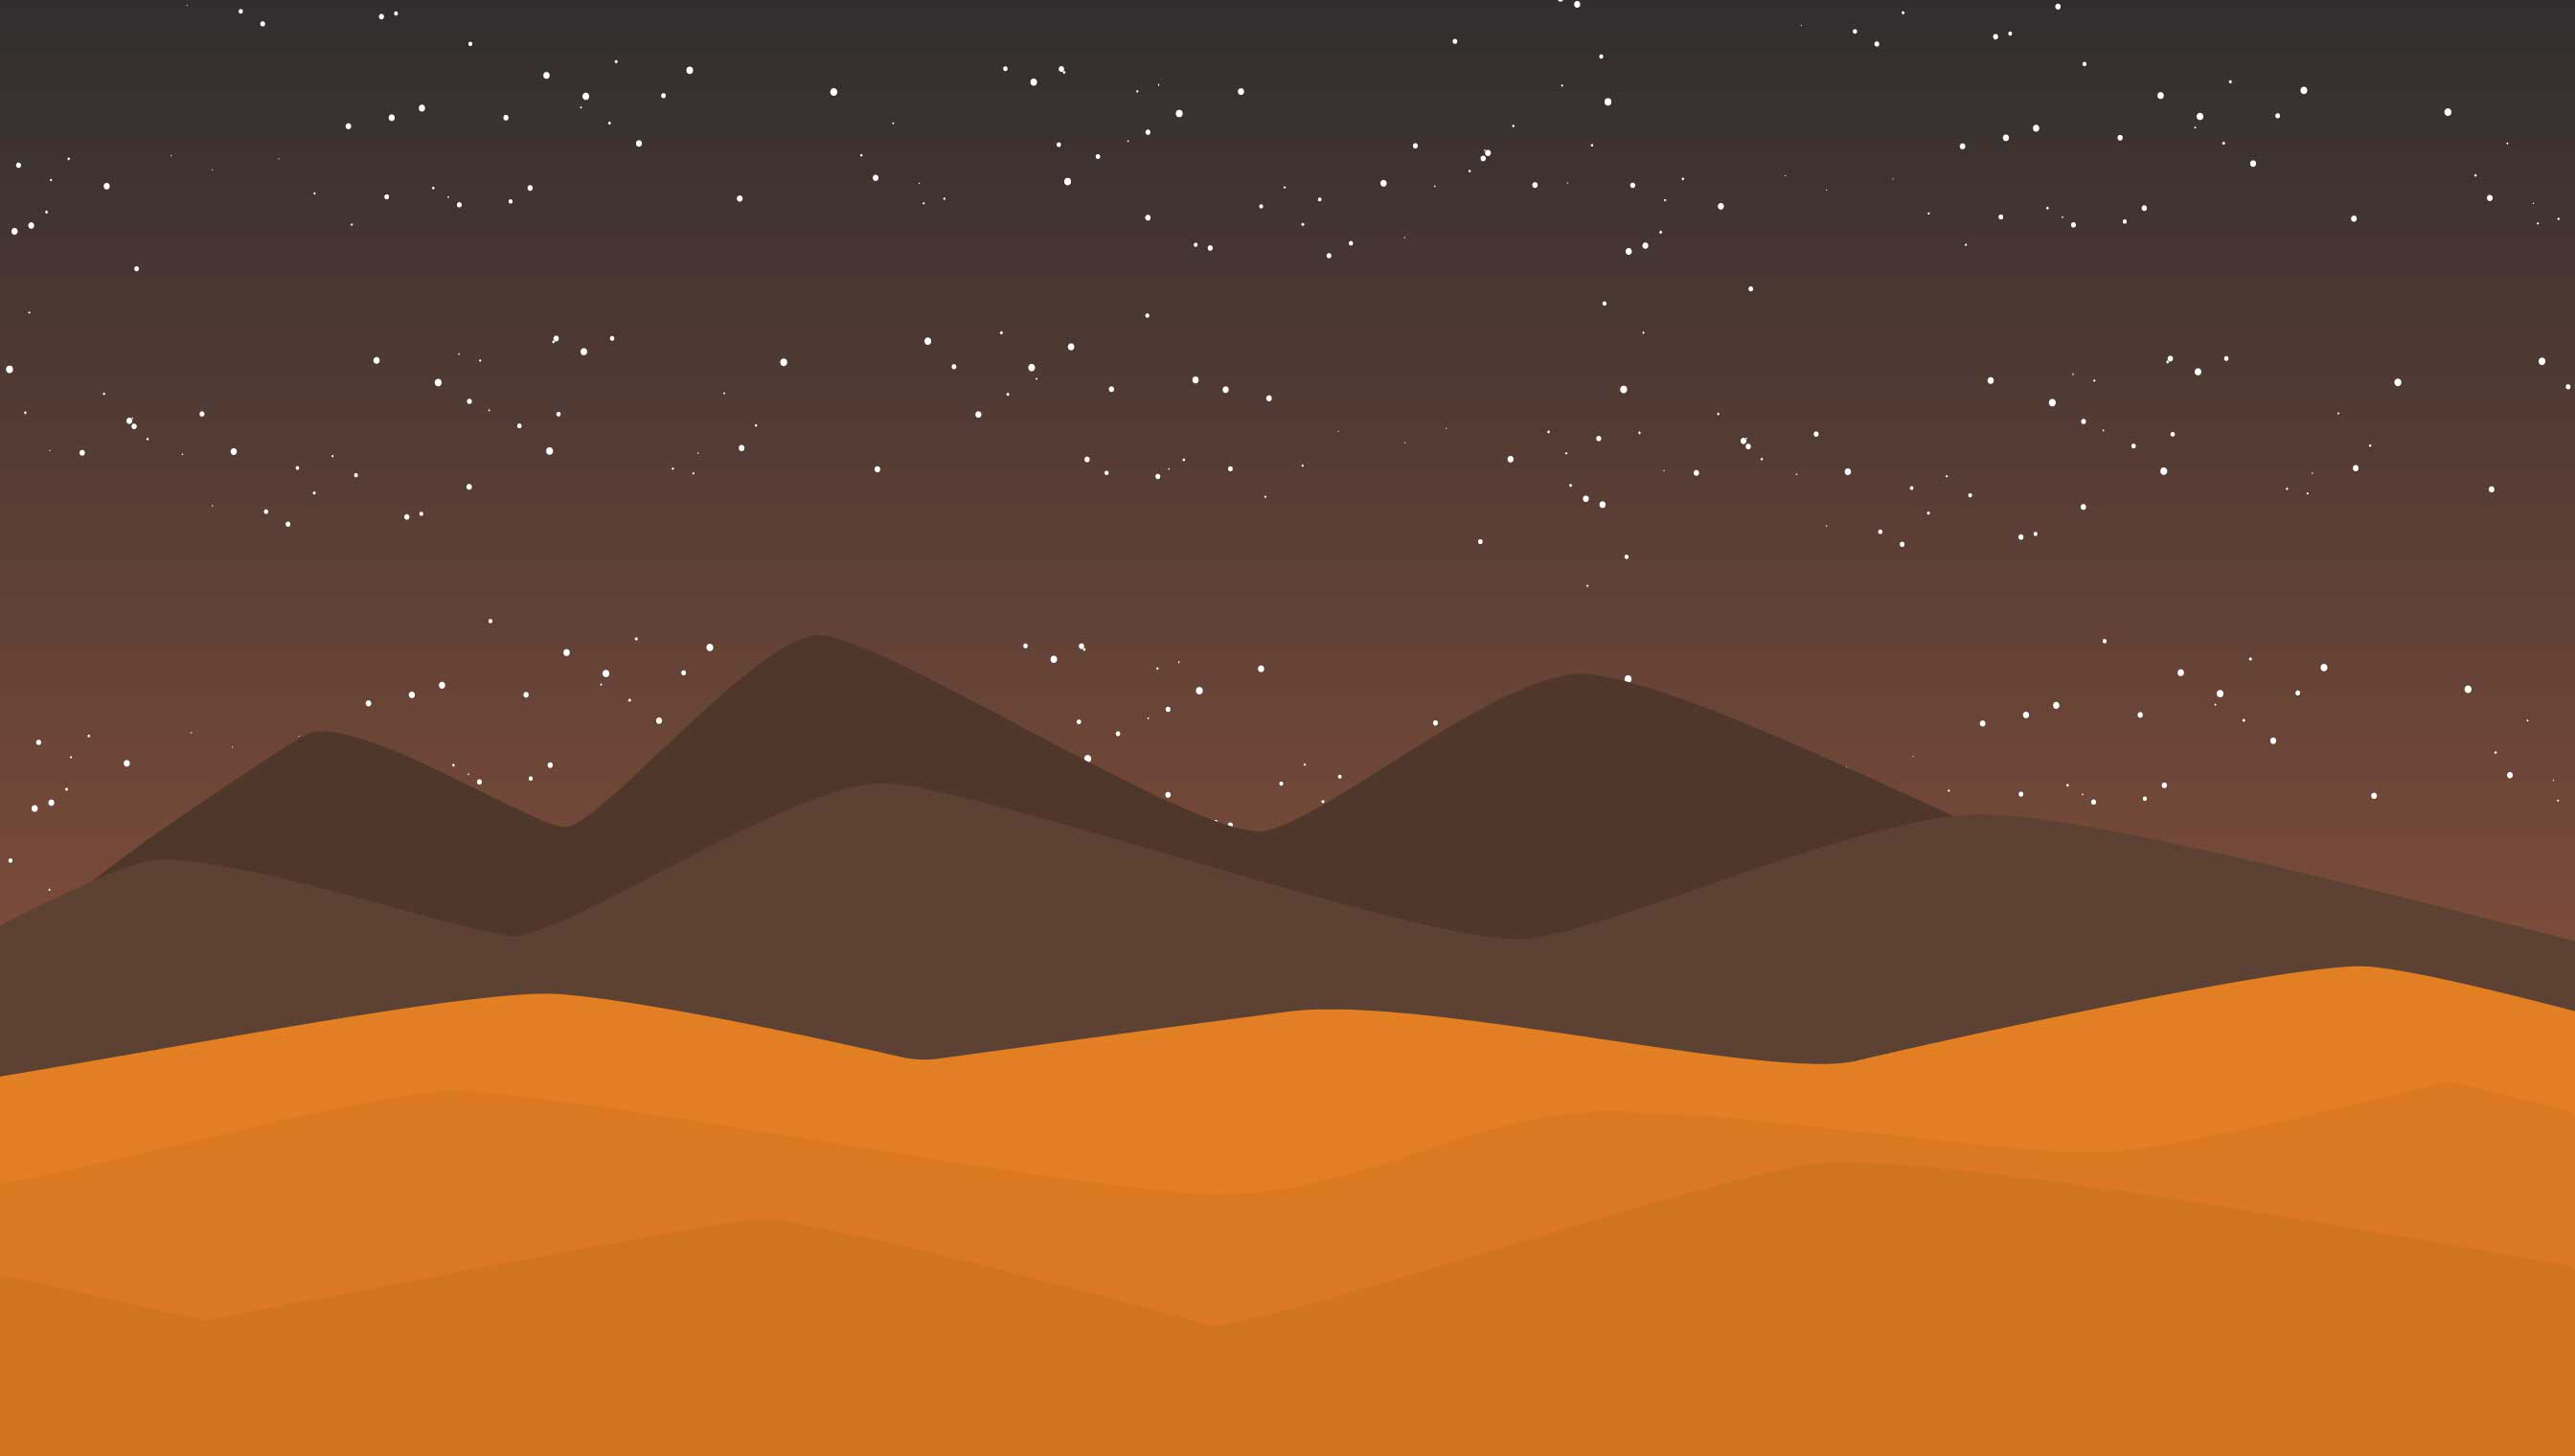 background scene - Space Background 10